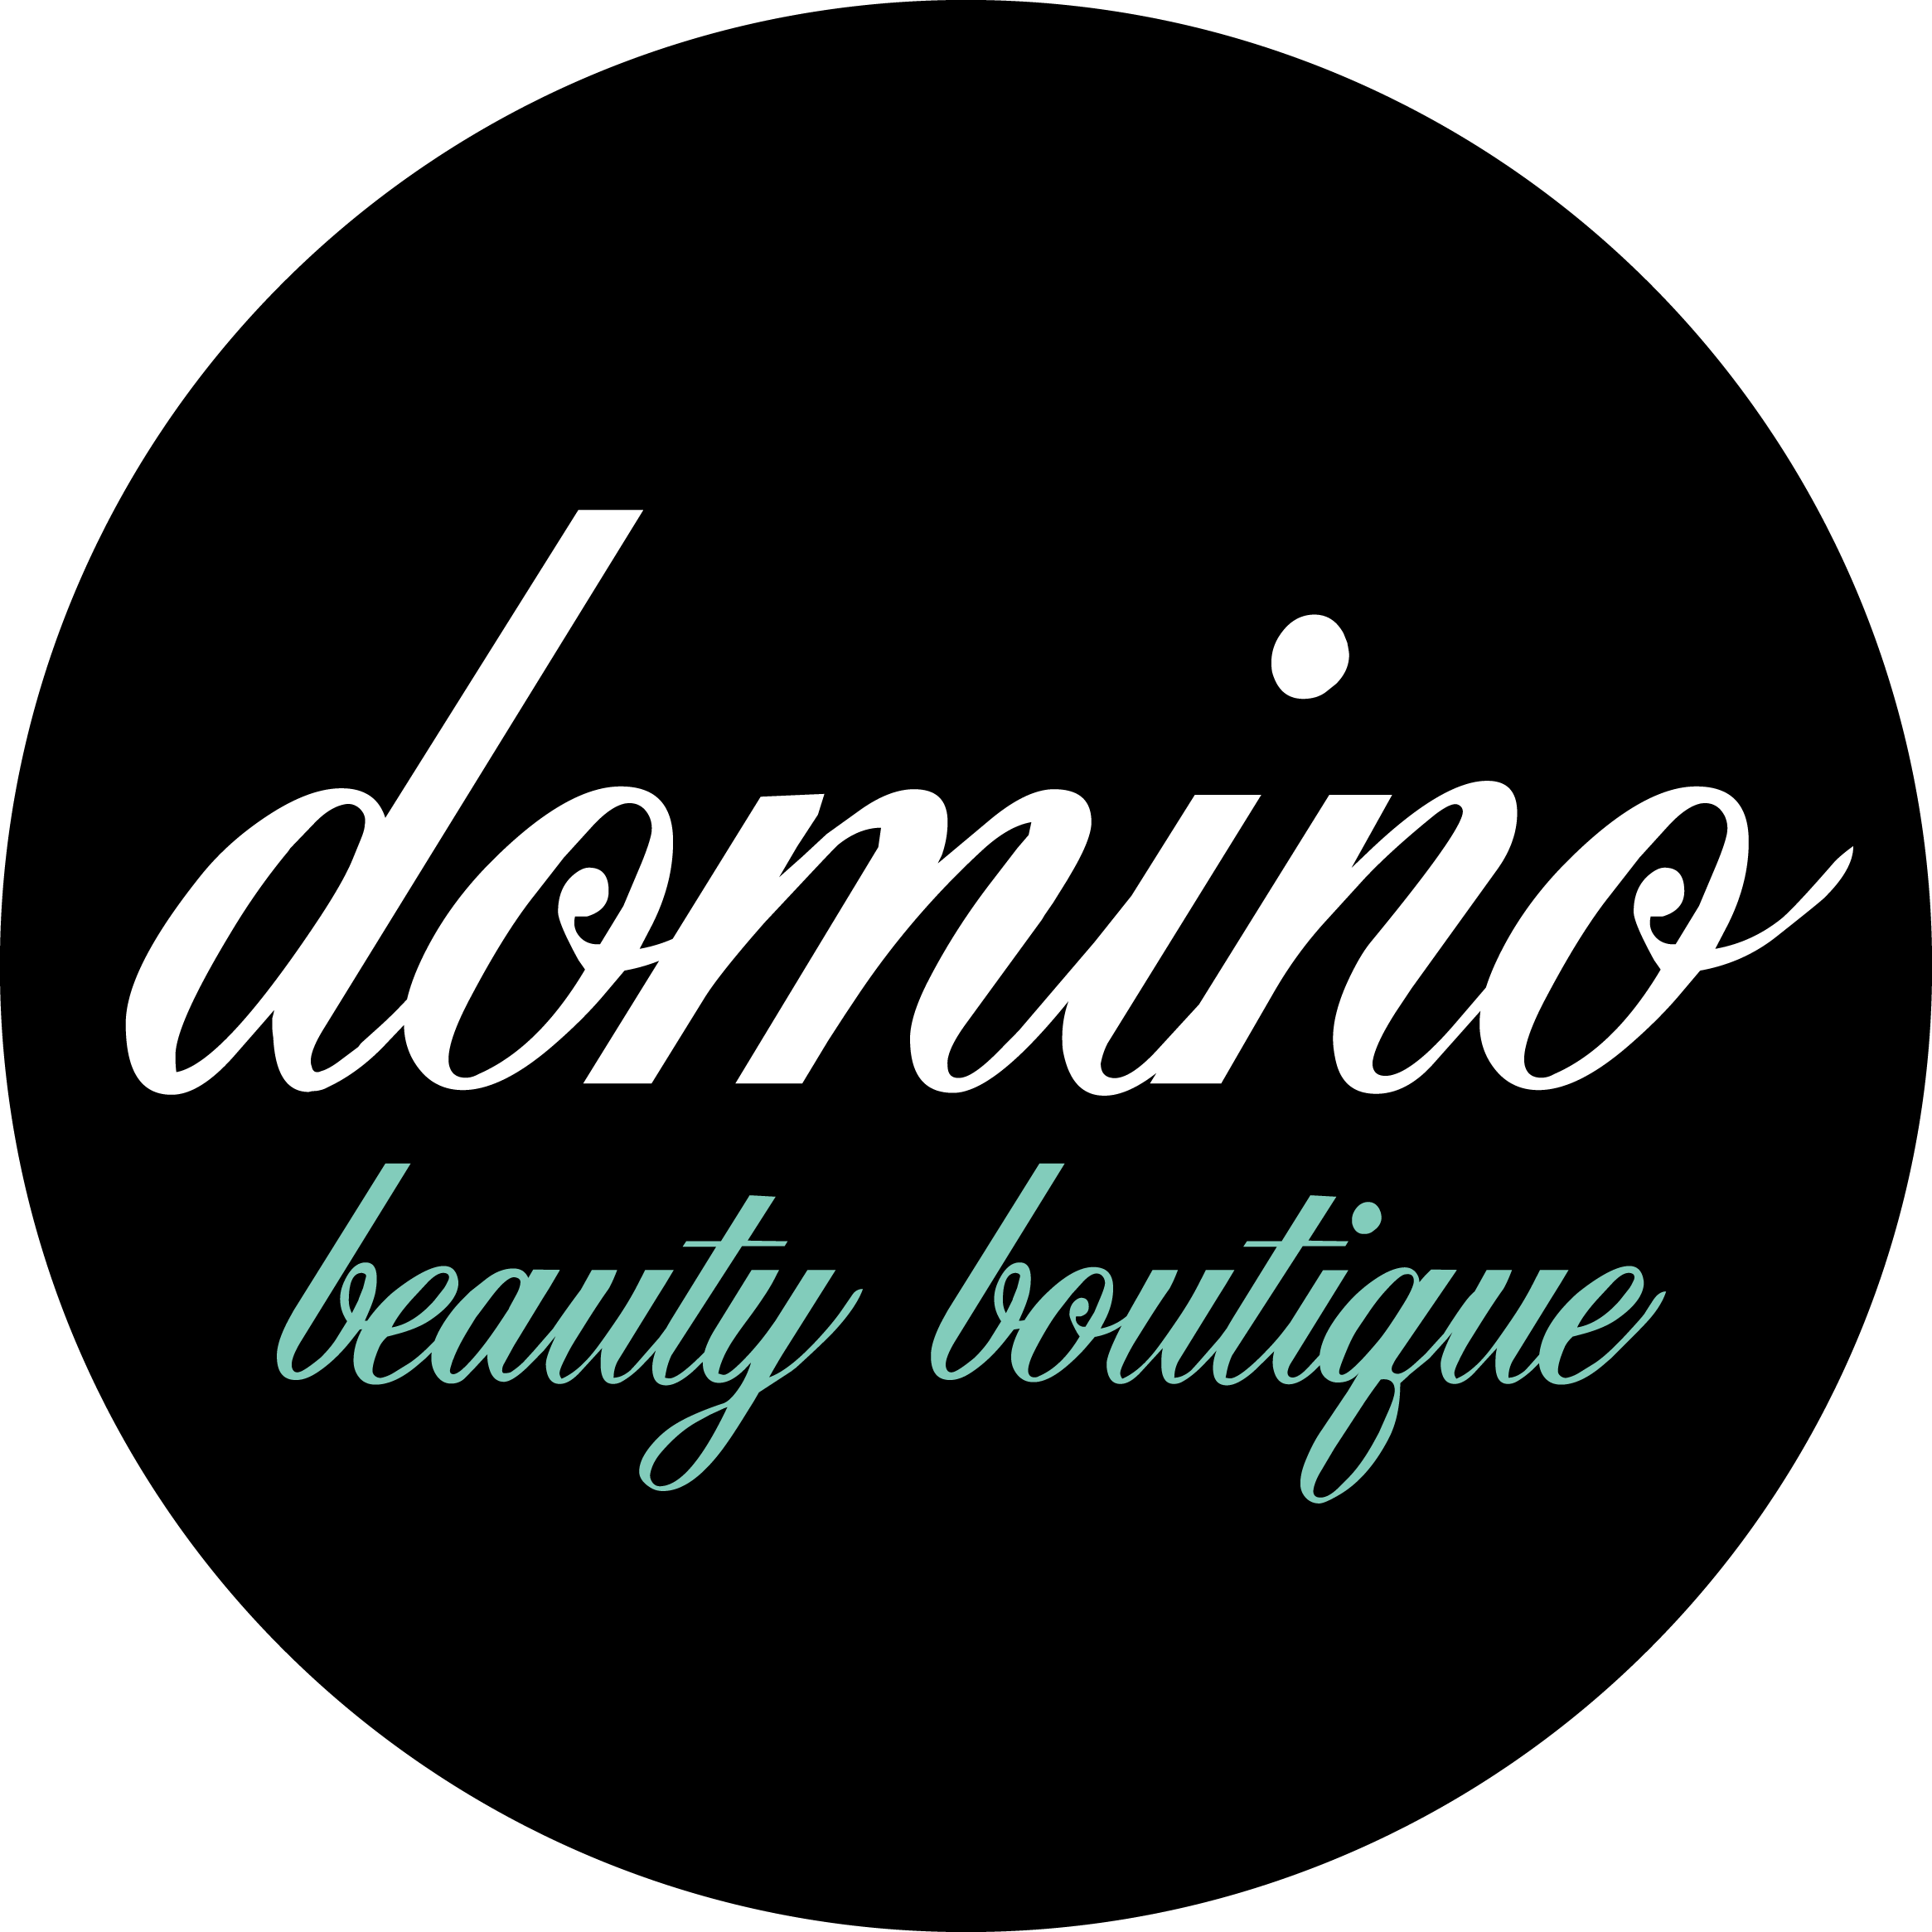 Domino_beauty_boutique_logo_transparent background.png